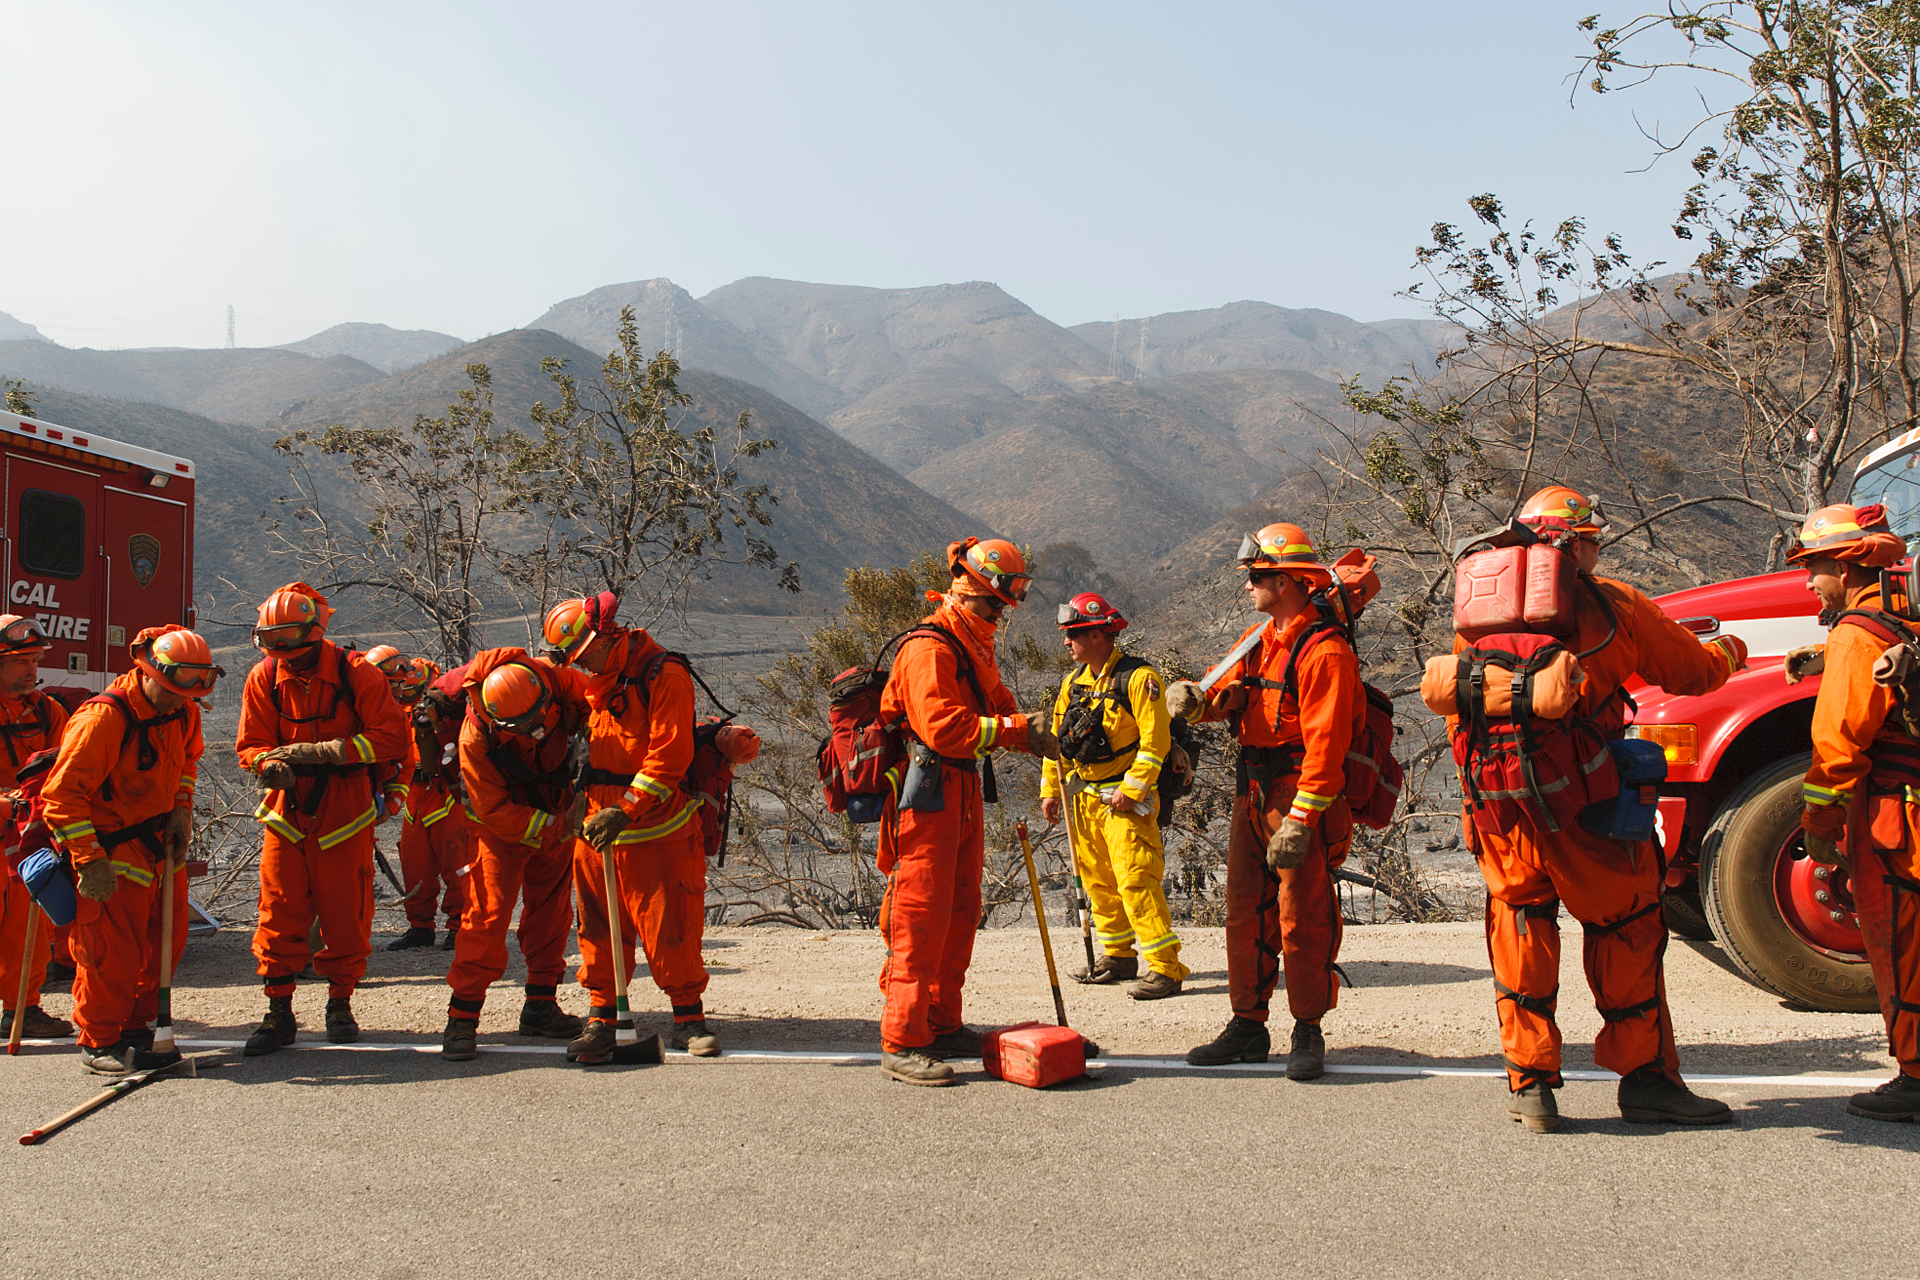 group of wildlands firefighters on road